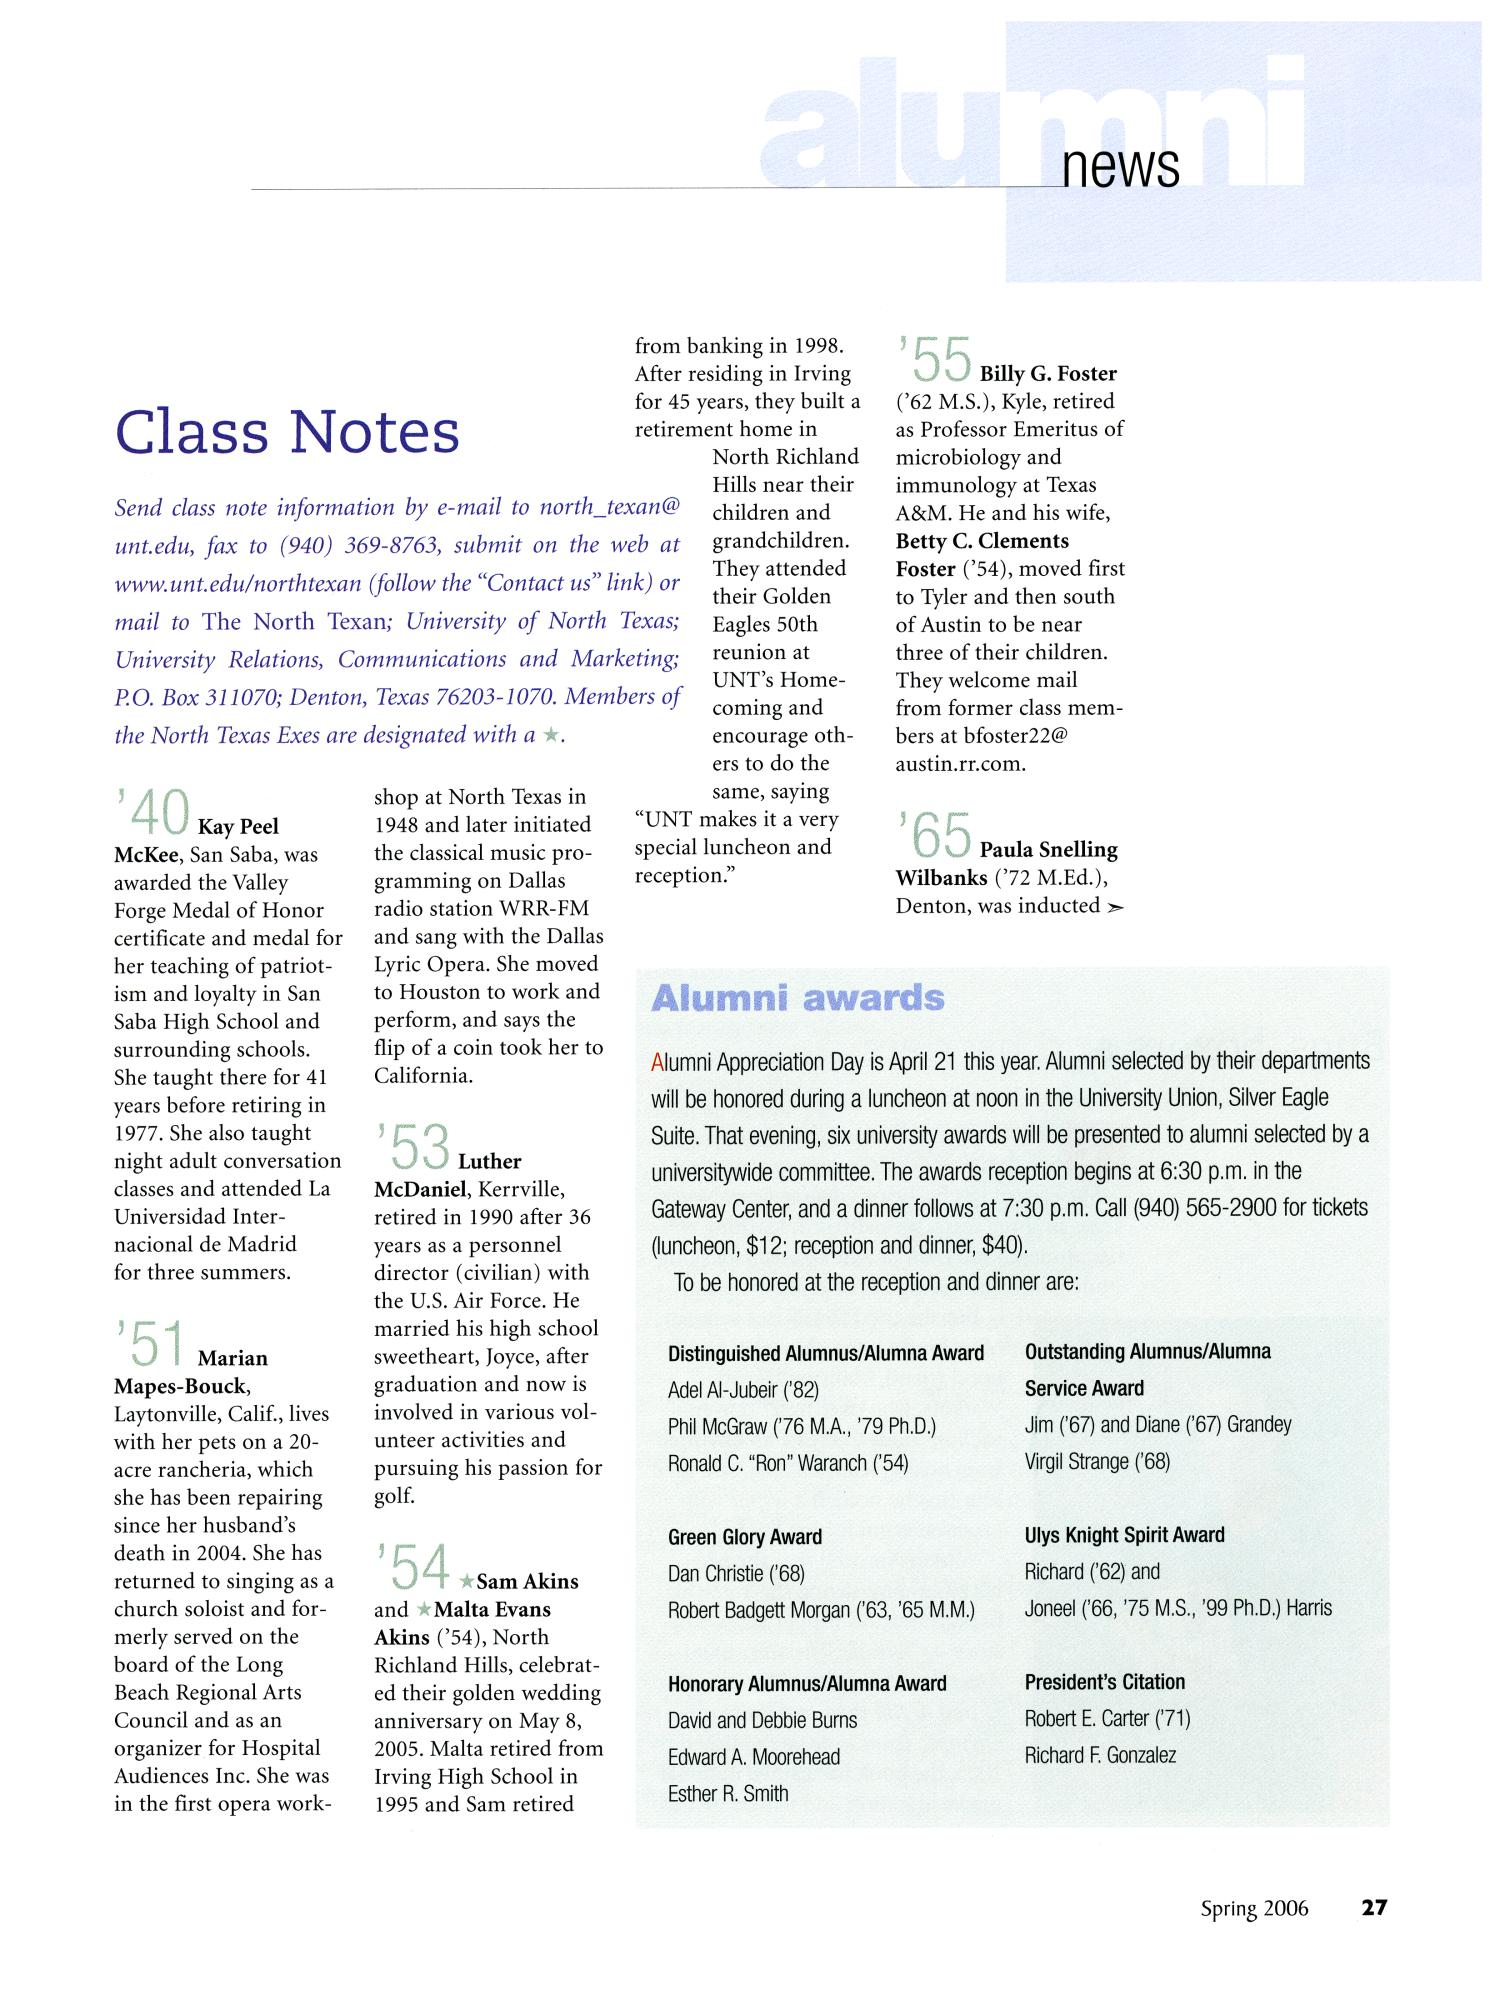 The North Texan, Volume 56, Number 1, Spring 2006                                                                                                      27